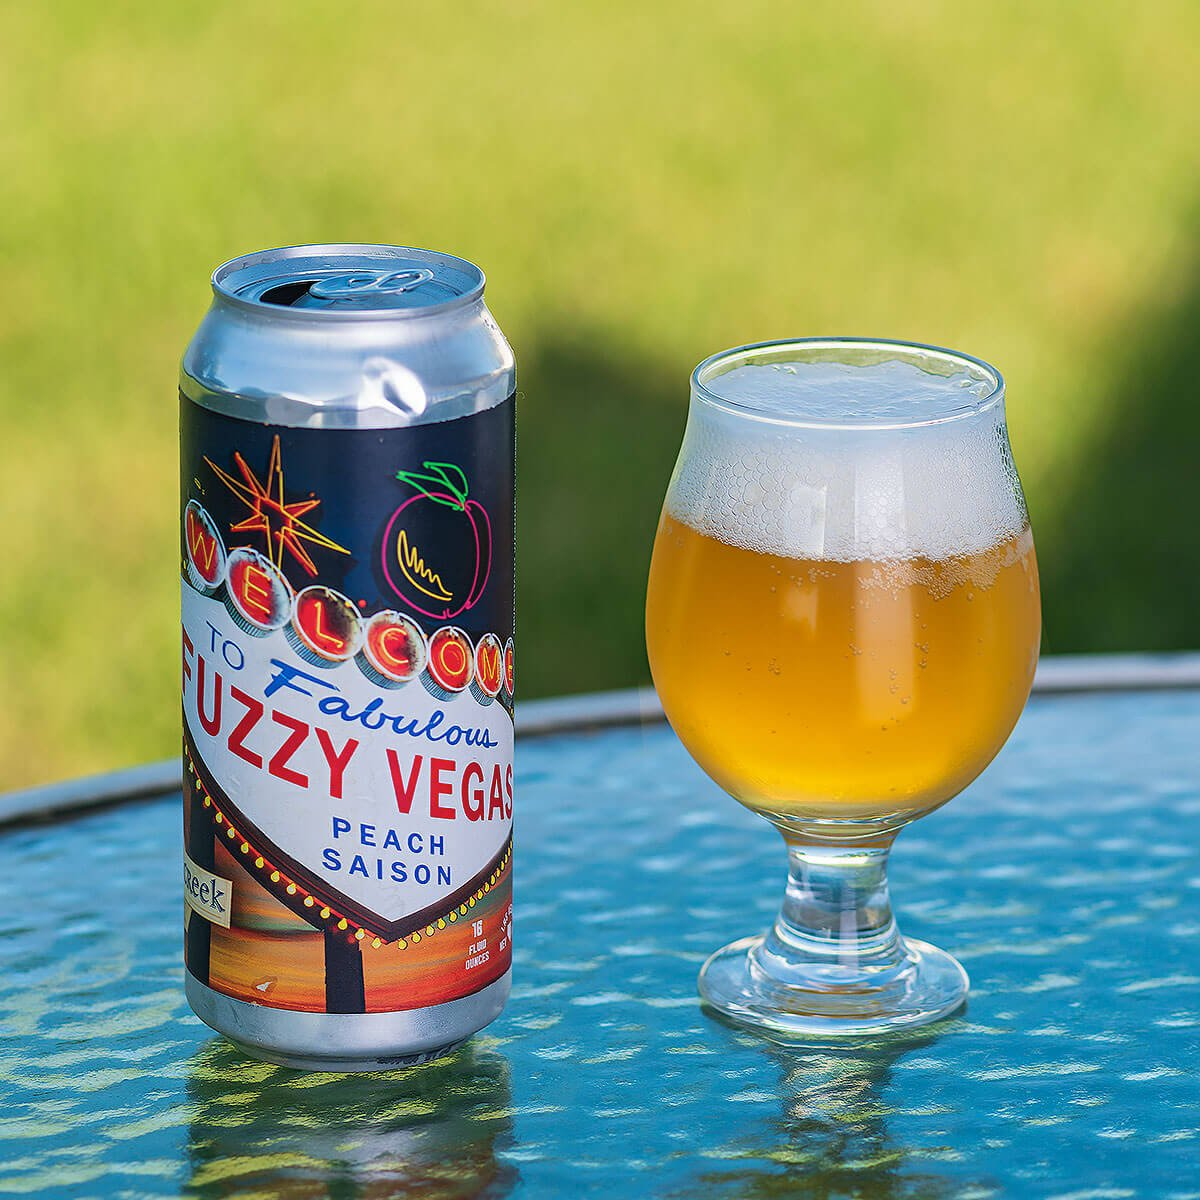 Fuzzy Vegas is a Belgian-style Saison by Tenaya Creek Brewery that blends a traditional Farmhouse Ale with sweet peaches.